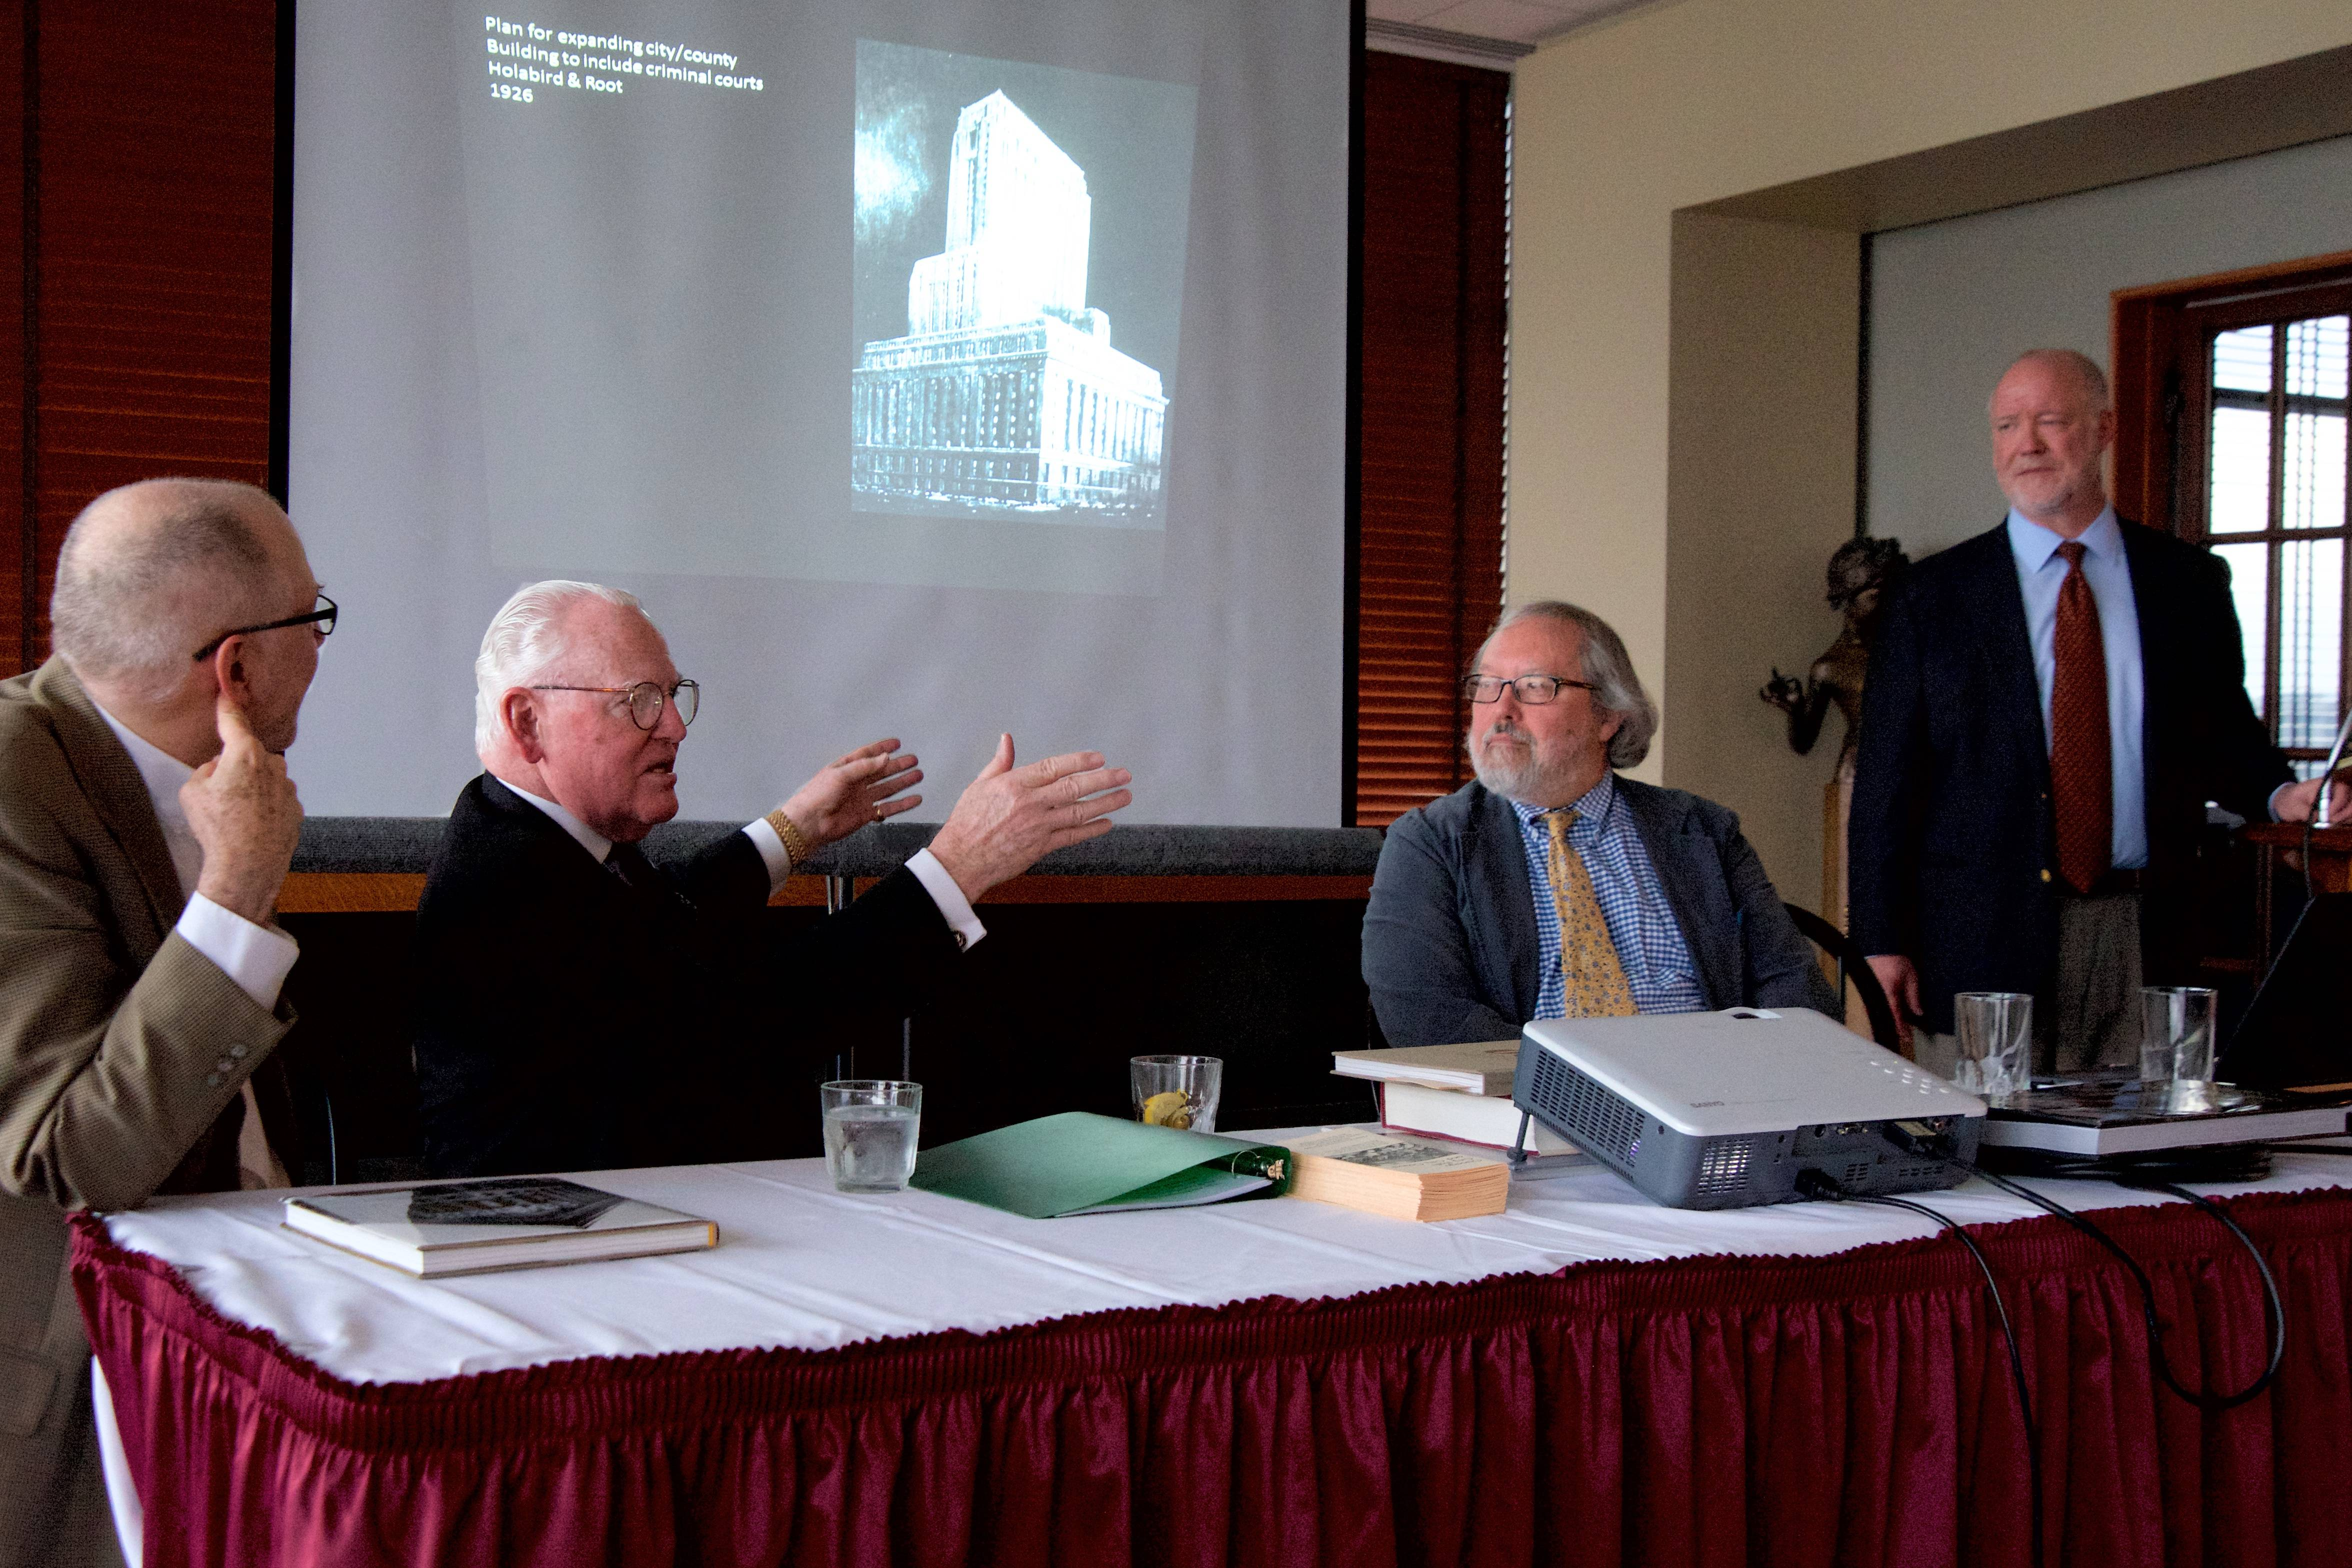 A panel discusses the history and cultural significance of Chicago area architecture, including, from left, Dr. Robert Bruegmann of University of Illinois at Chicago, Chicago Alderman and author Ed Burke, Dr. Kevin Harrington of Illinois Institute of Technology, and Columbia College history professor Lindsay Huge.